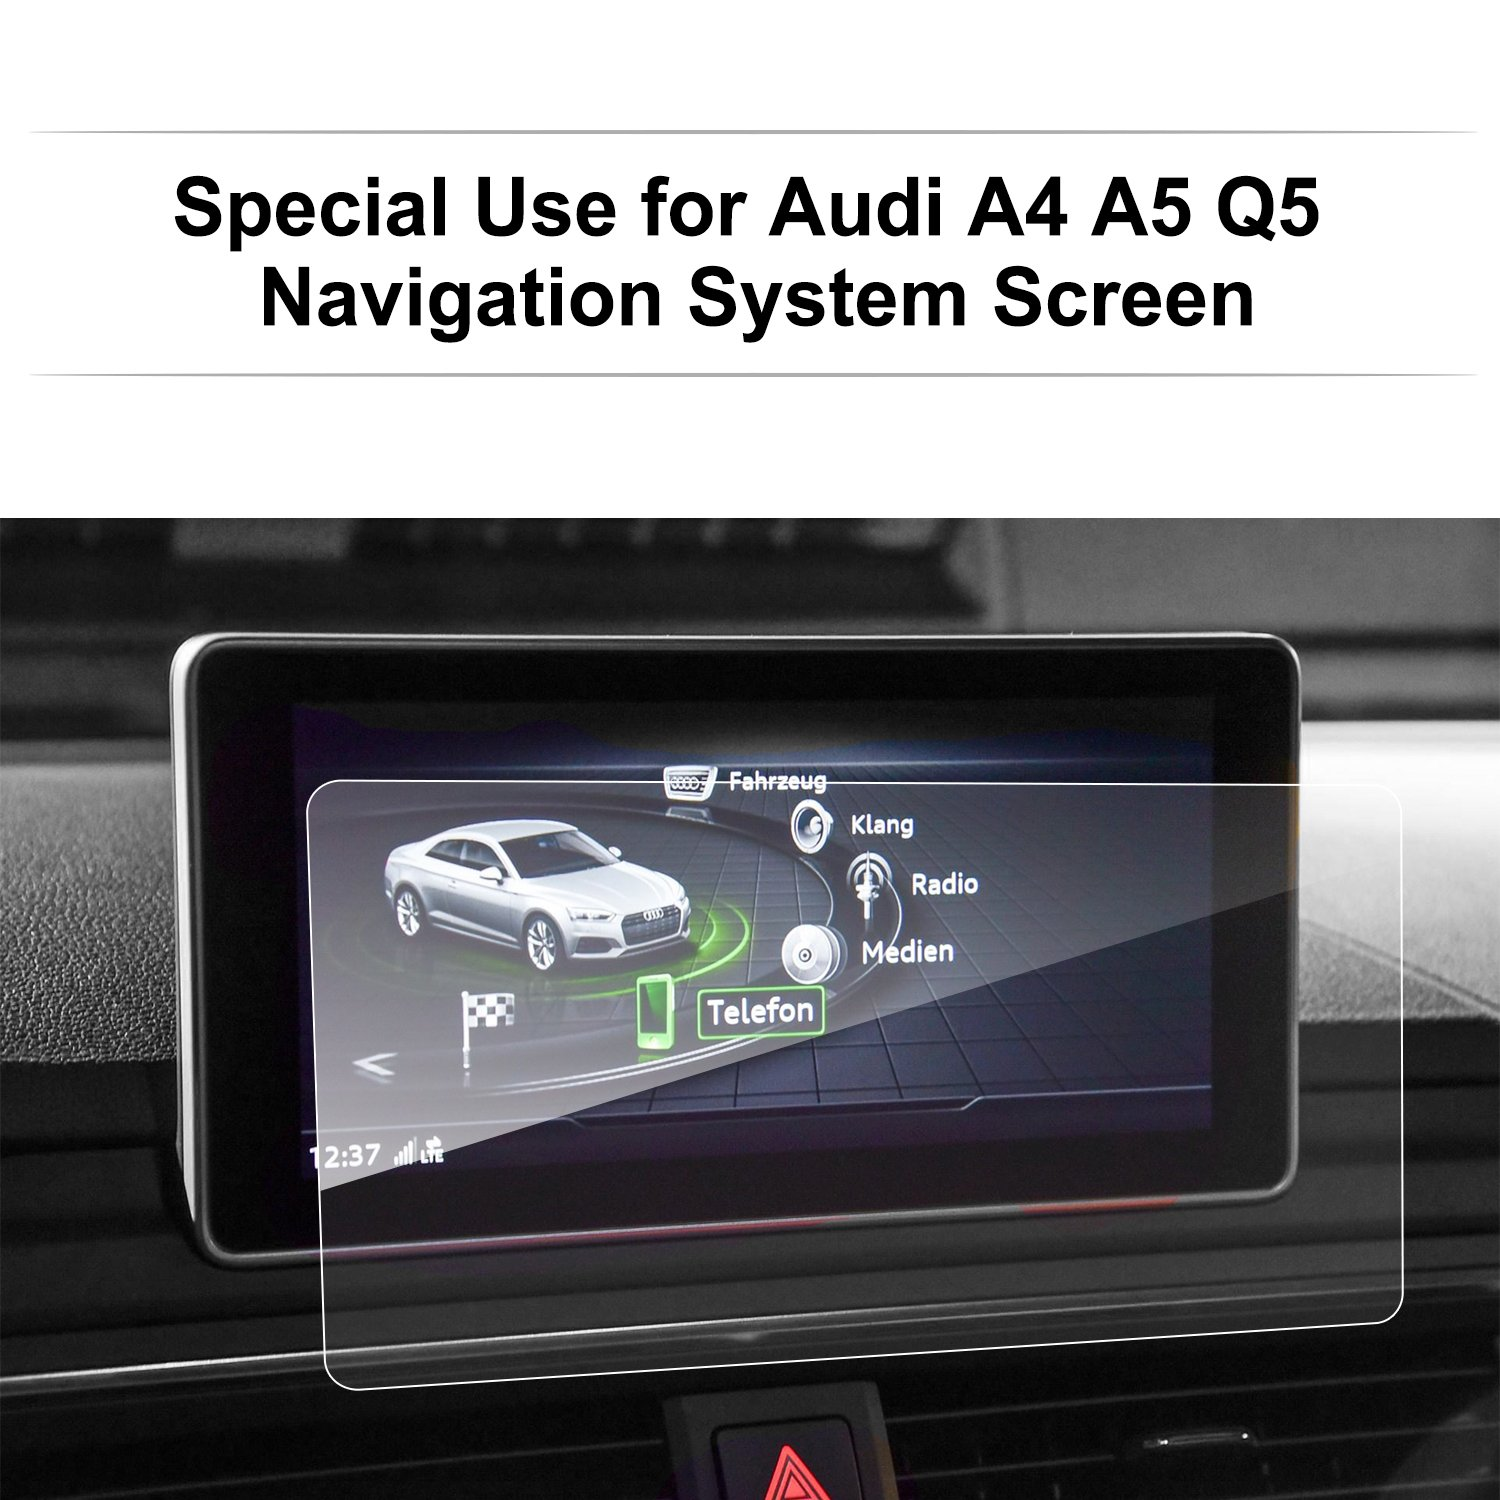 LFOTPP Audi A4 A5 Q5 8.3 Inch 2017 2018 Glass Car Navigation Screen Protector, [9H] Clear Tempered Glass Infotainment Center Touch Screen Protector Anti Scratch High Clarity